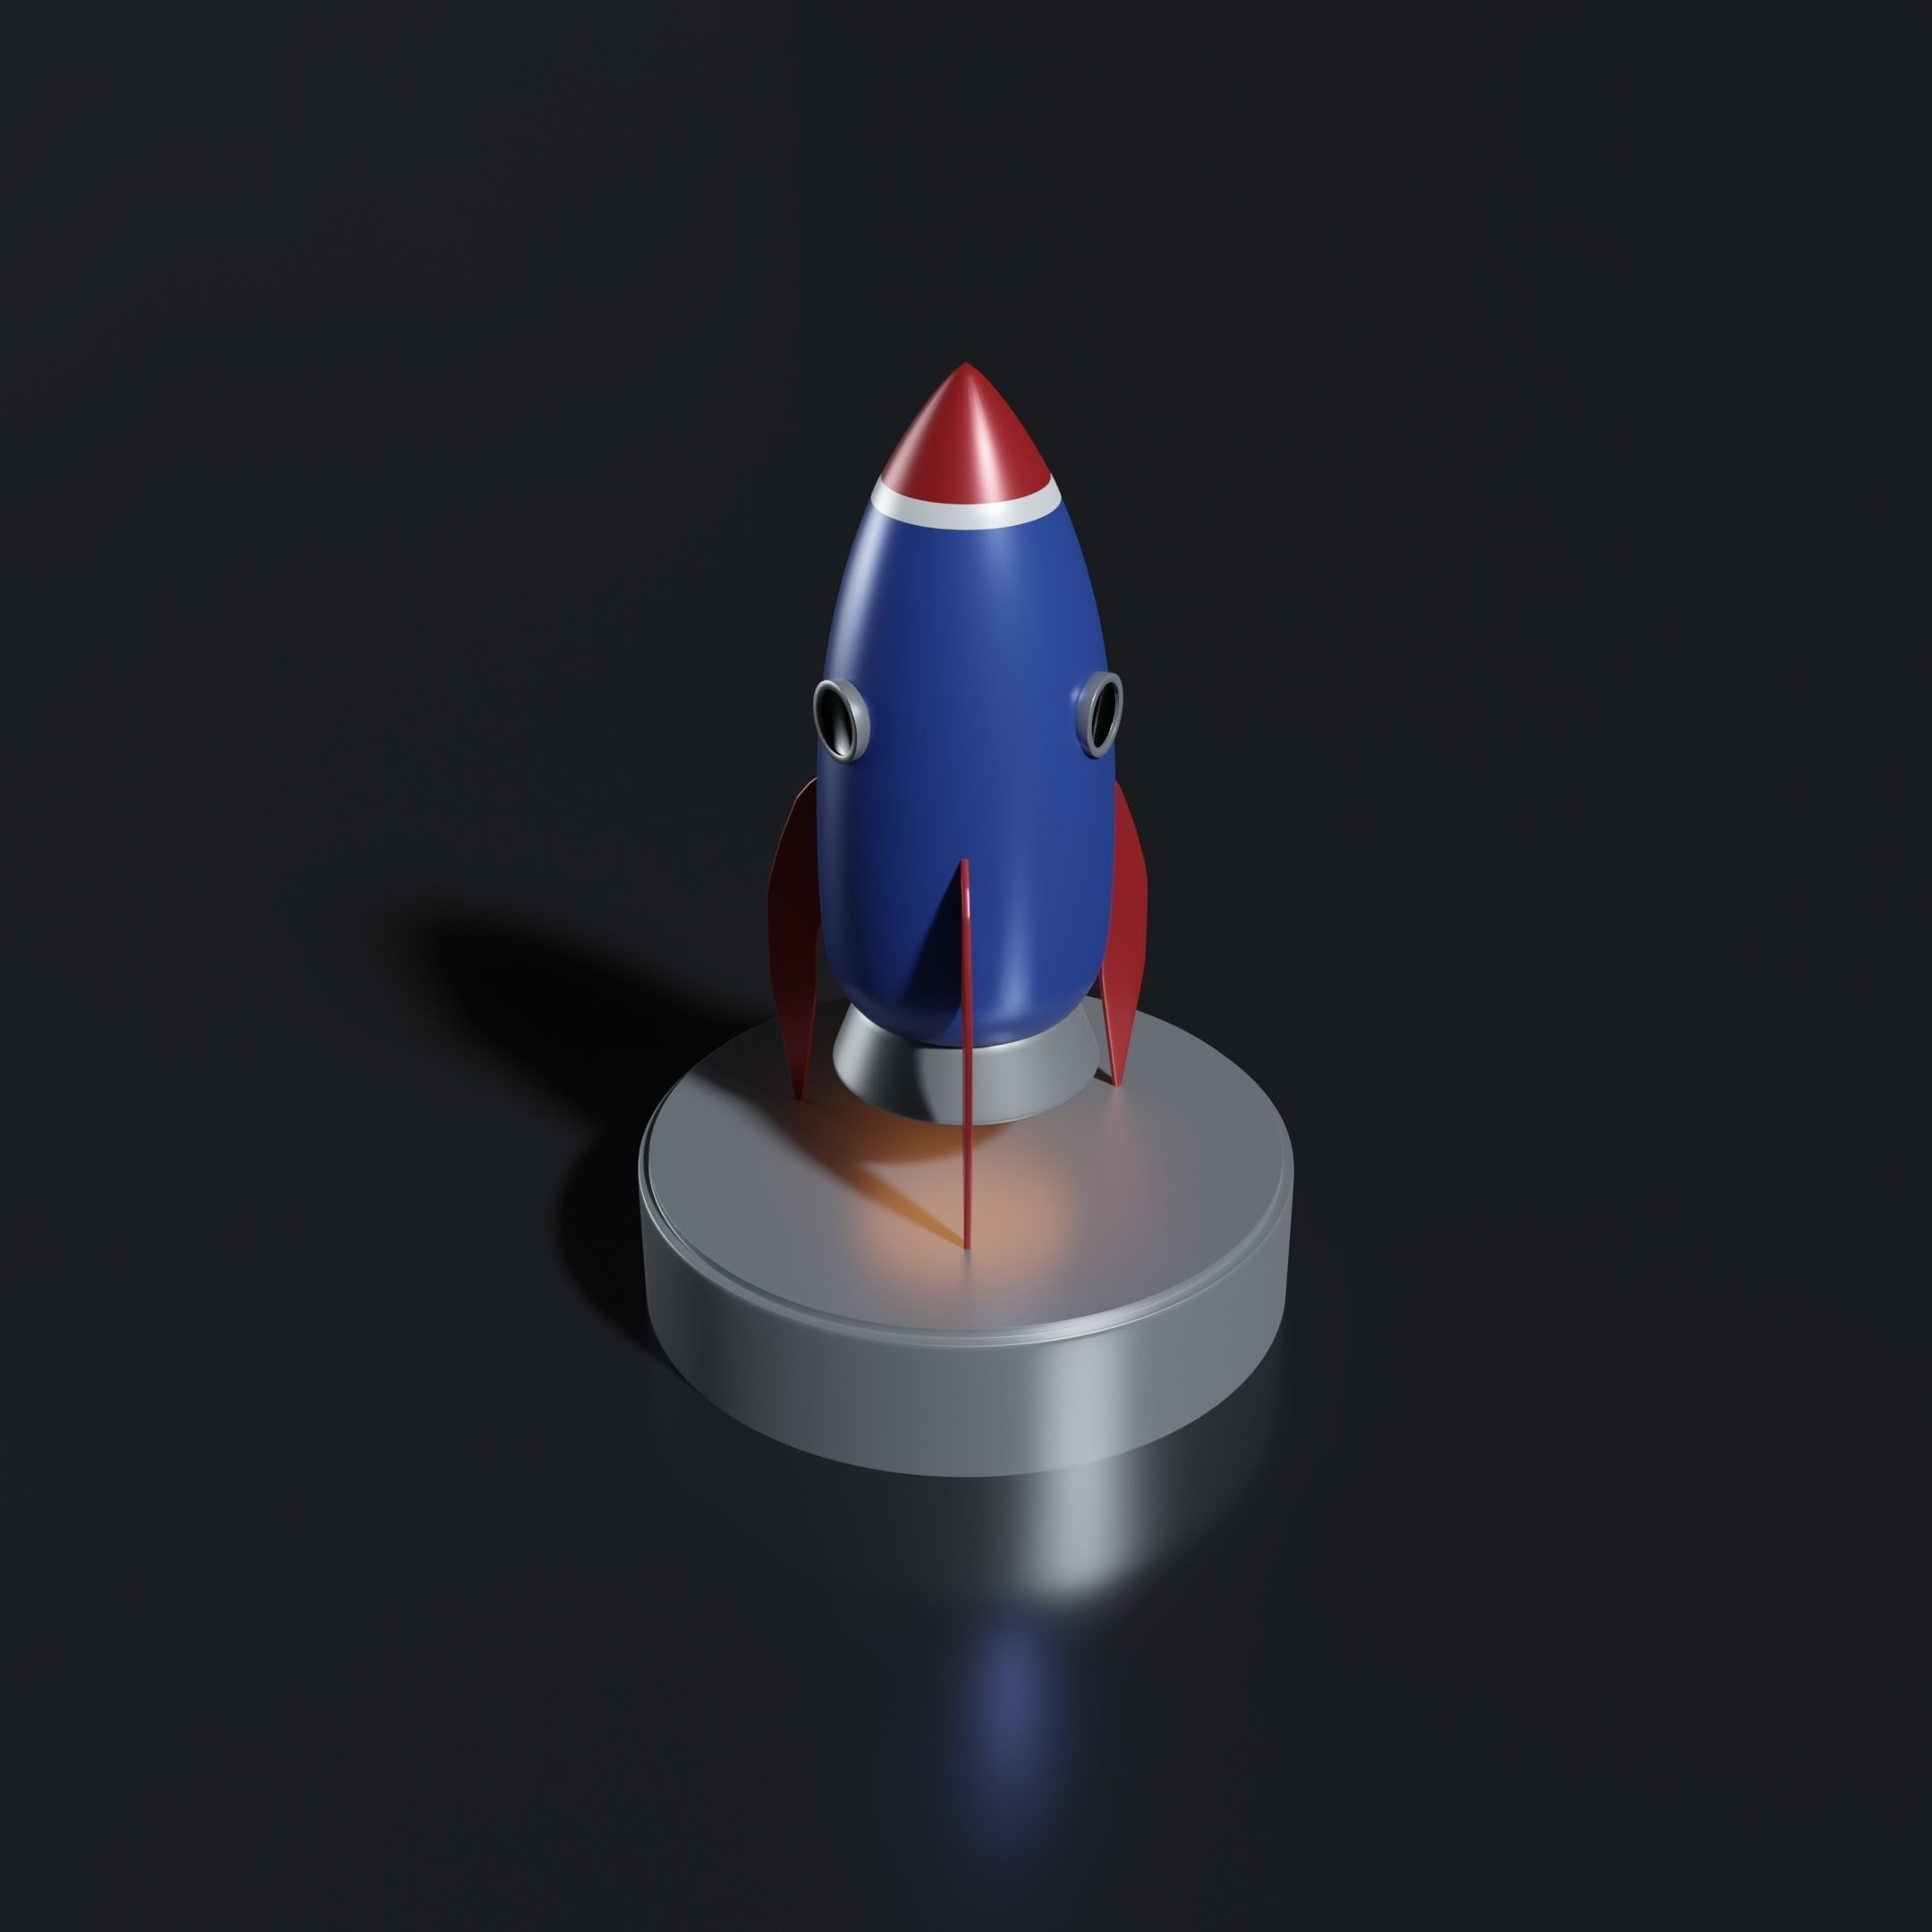 Cartoon Rocket Ship